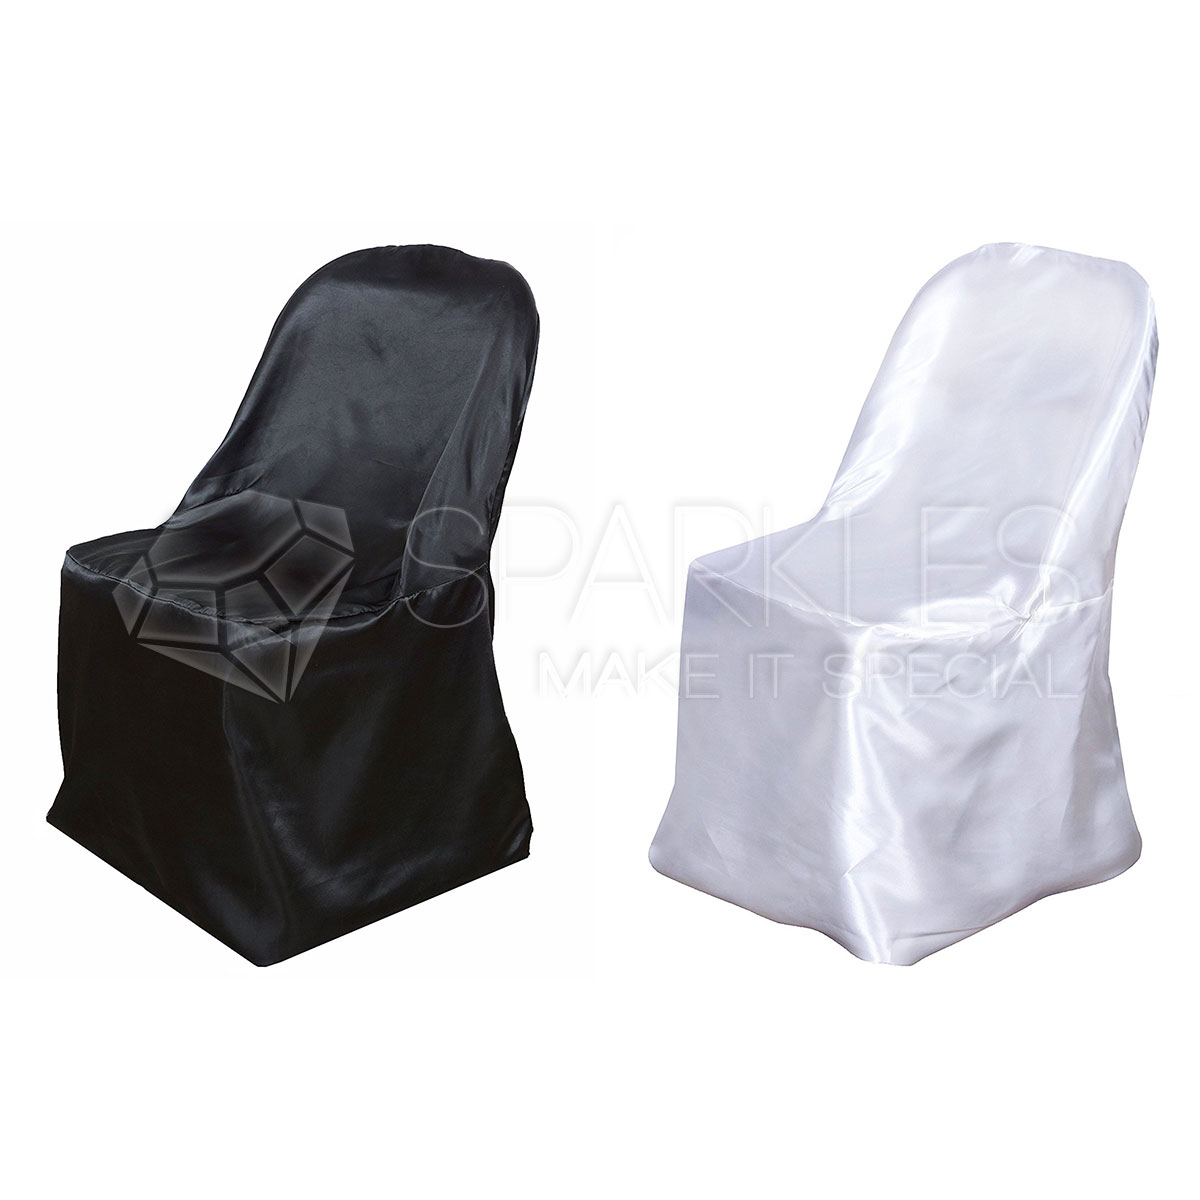 universal banquet chair covers serta office warranty claim satin black or white folding wedding